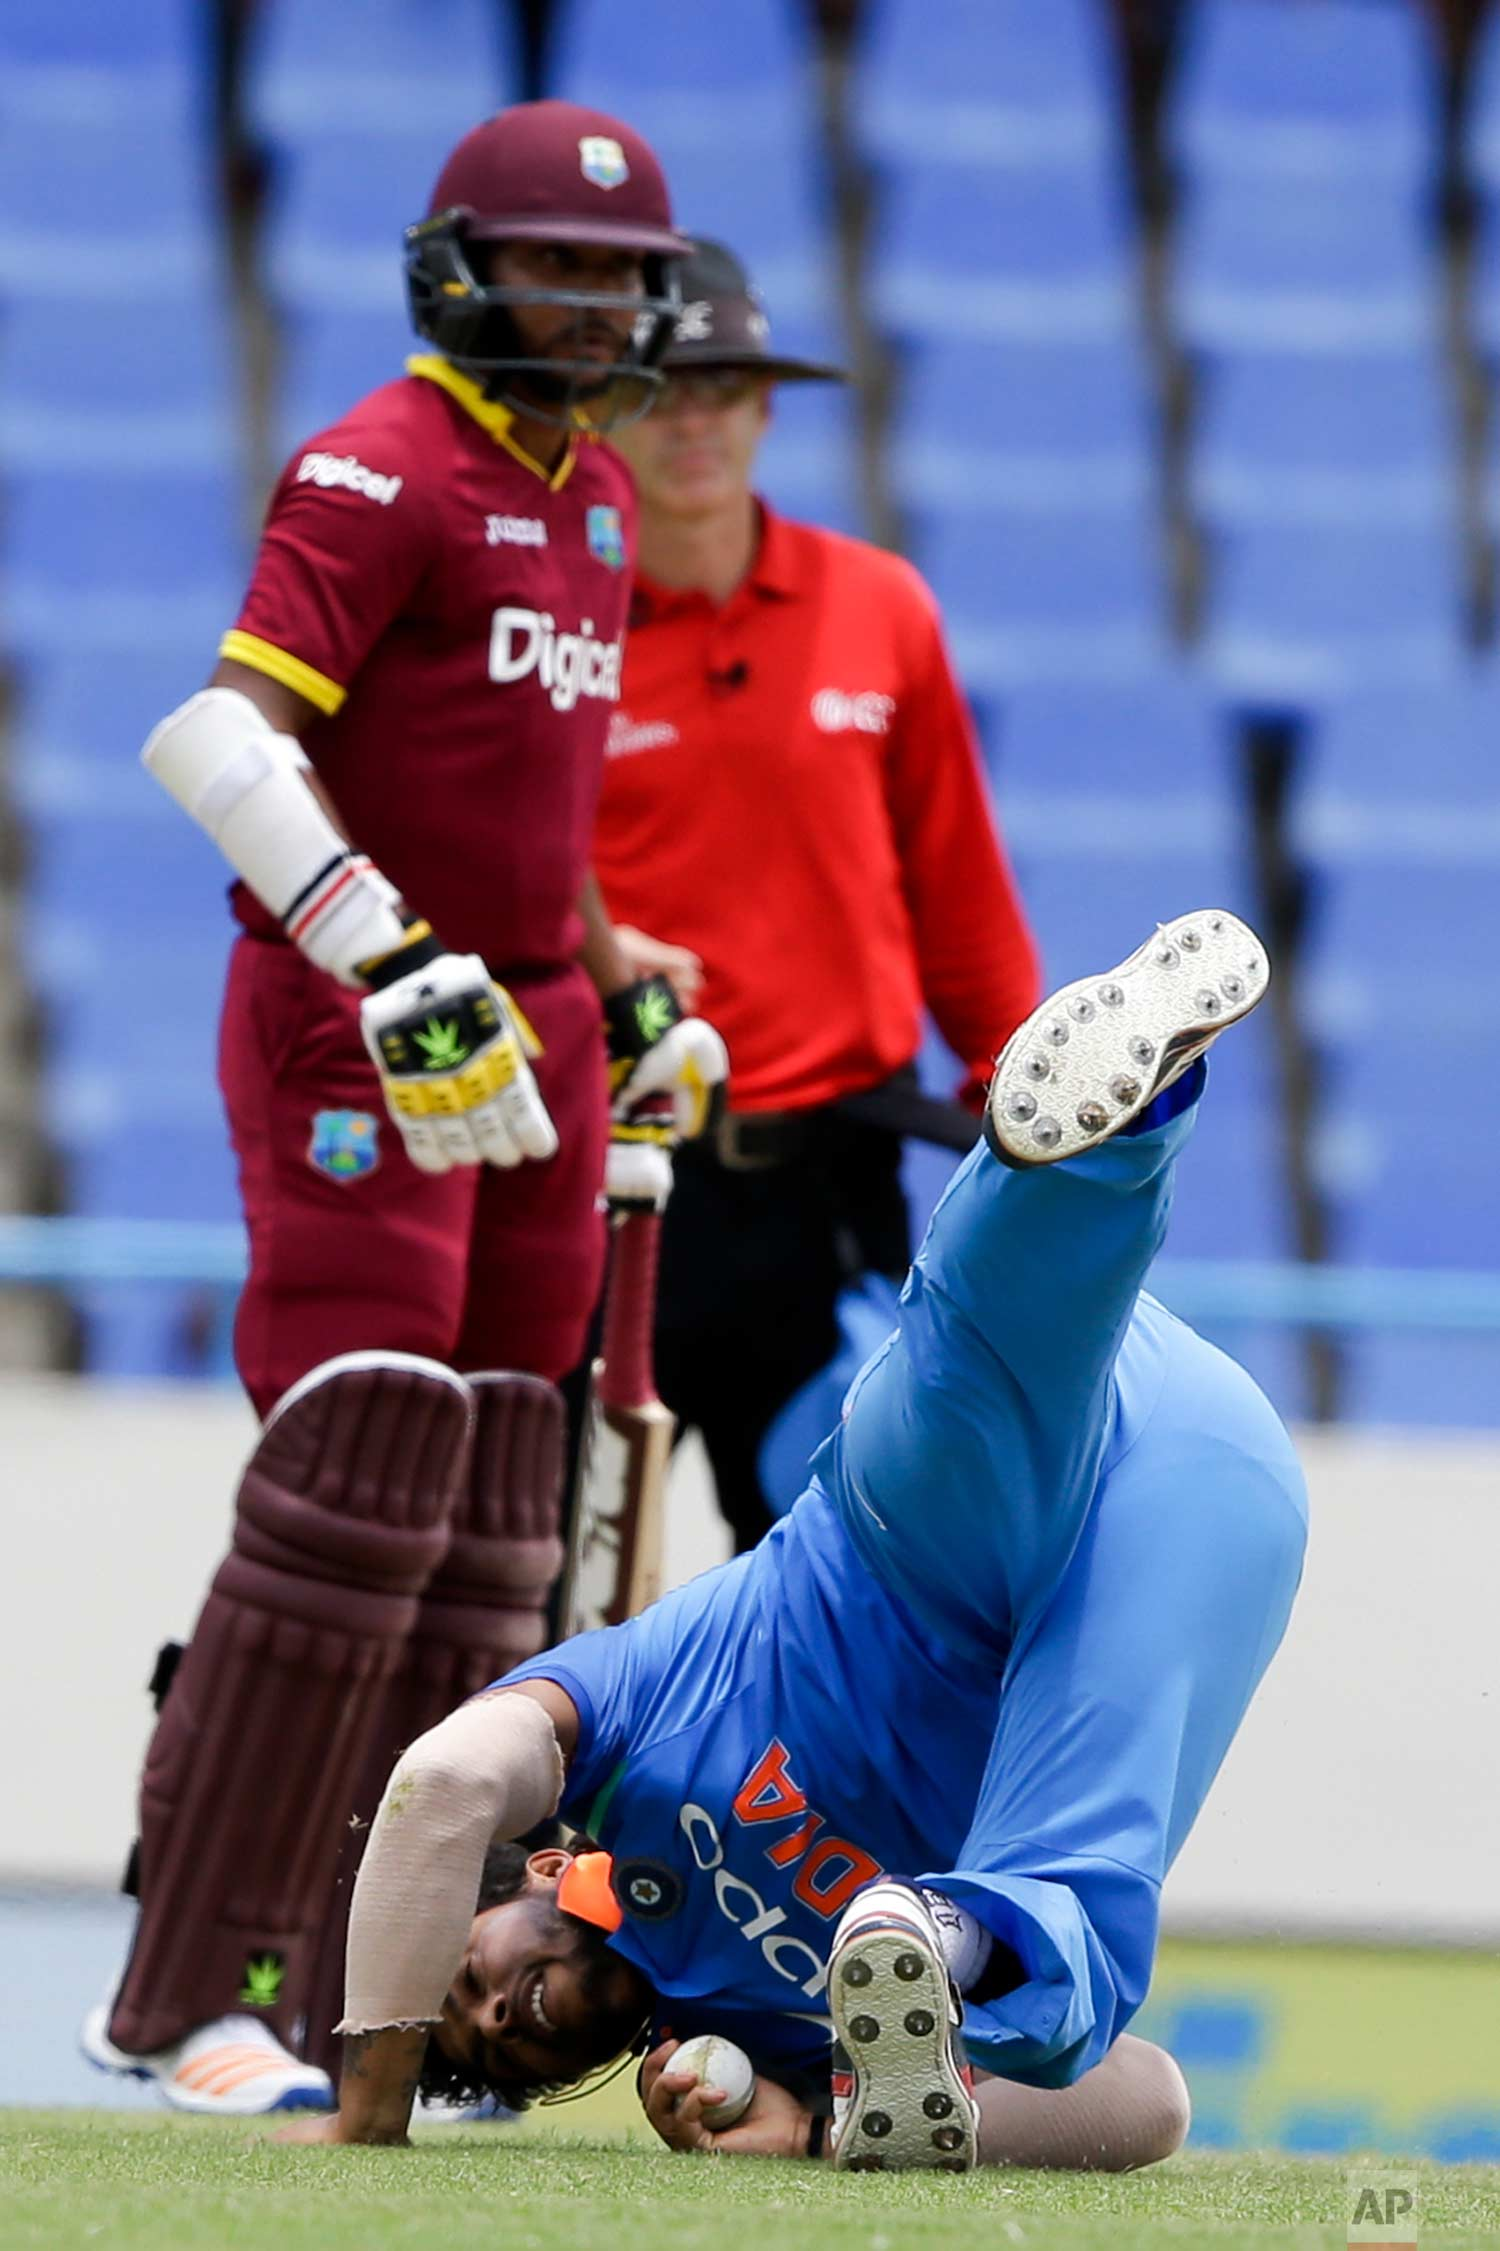 India's Umesh Yadav takes the catch from his own bowling to dismiss West Indies' Ashley Nurse during their fourth ODI cricket match at the Sir Vivian Richards Stadium in North Sound, Antigua and Barbuda, Sunday, July 2, 2017. (AP Photo/Ricardo Mazalan)